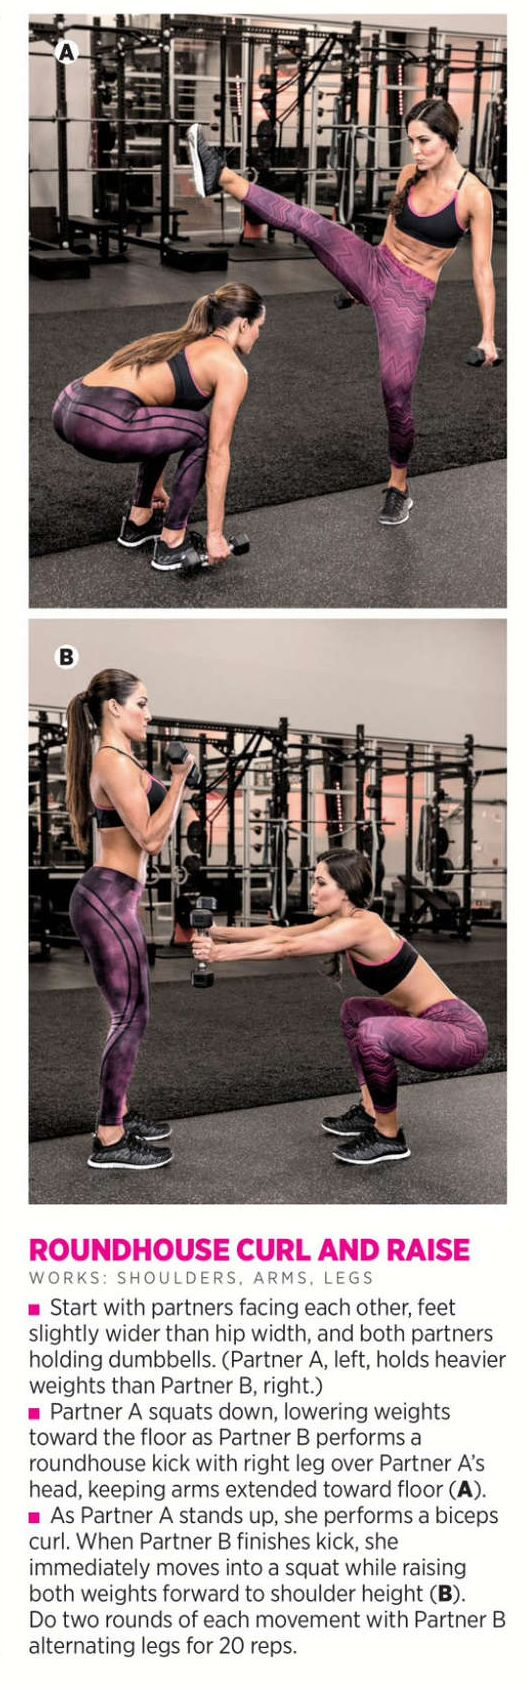 Brie & Nikki Bella - Muscle & Fitness Hers Magazine